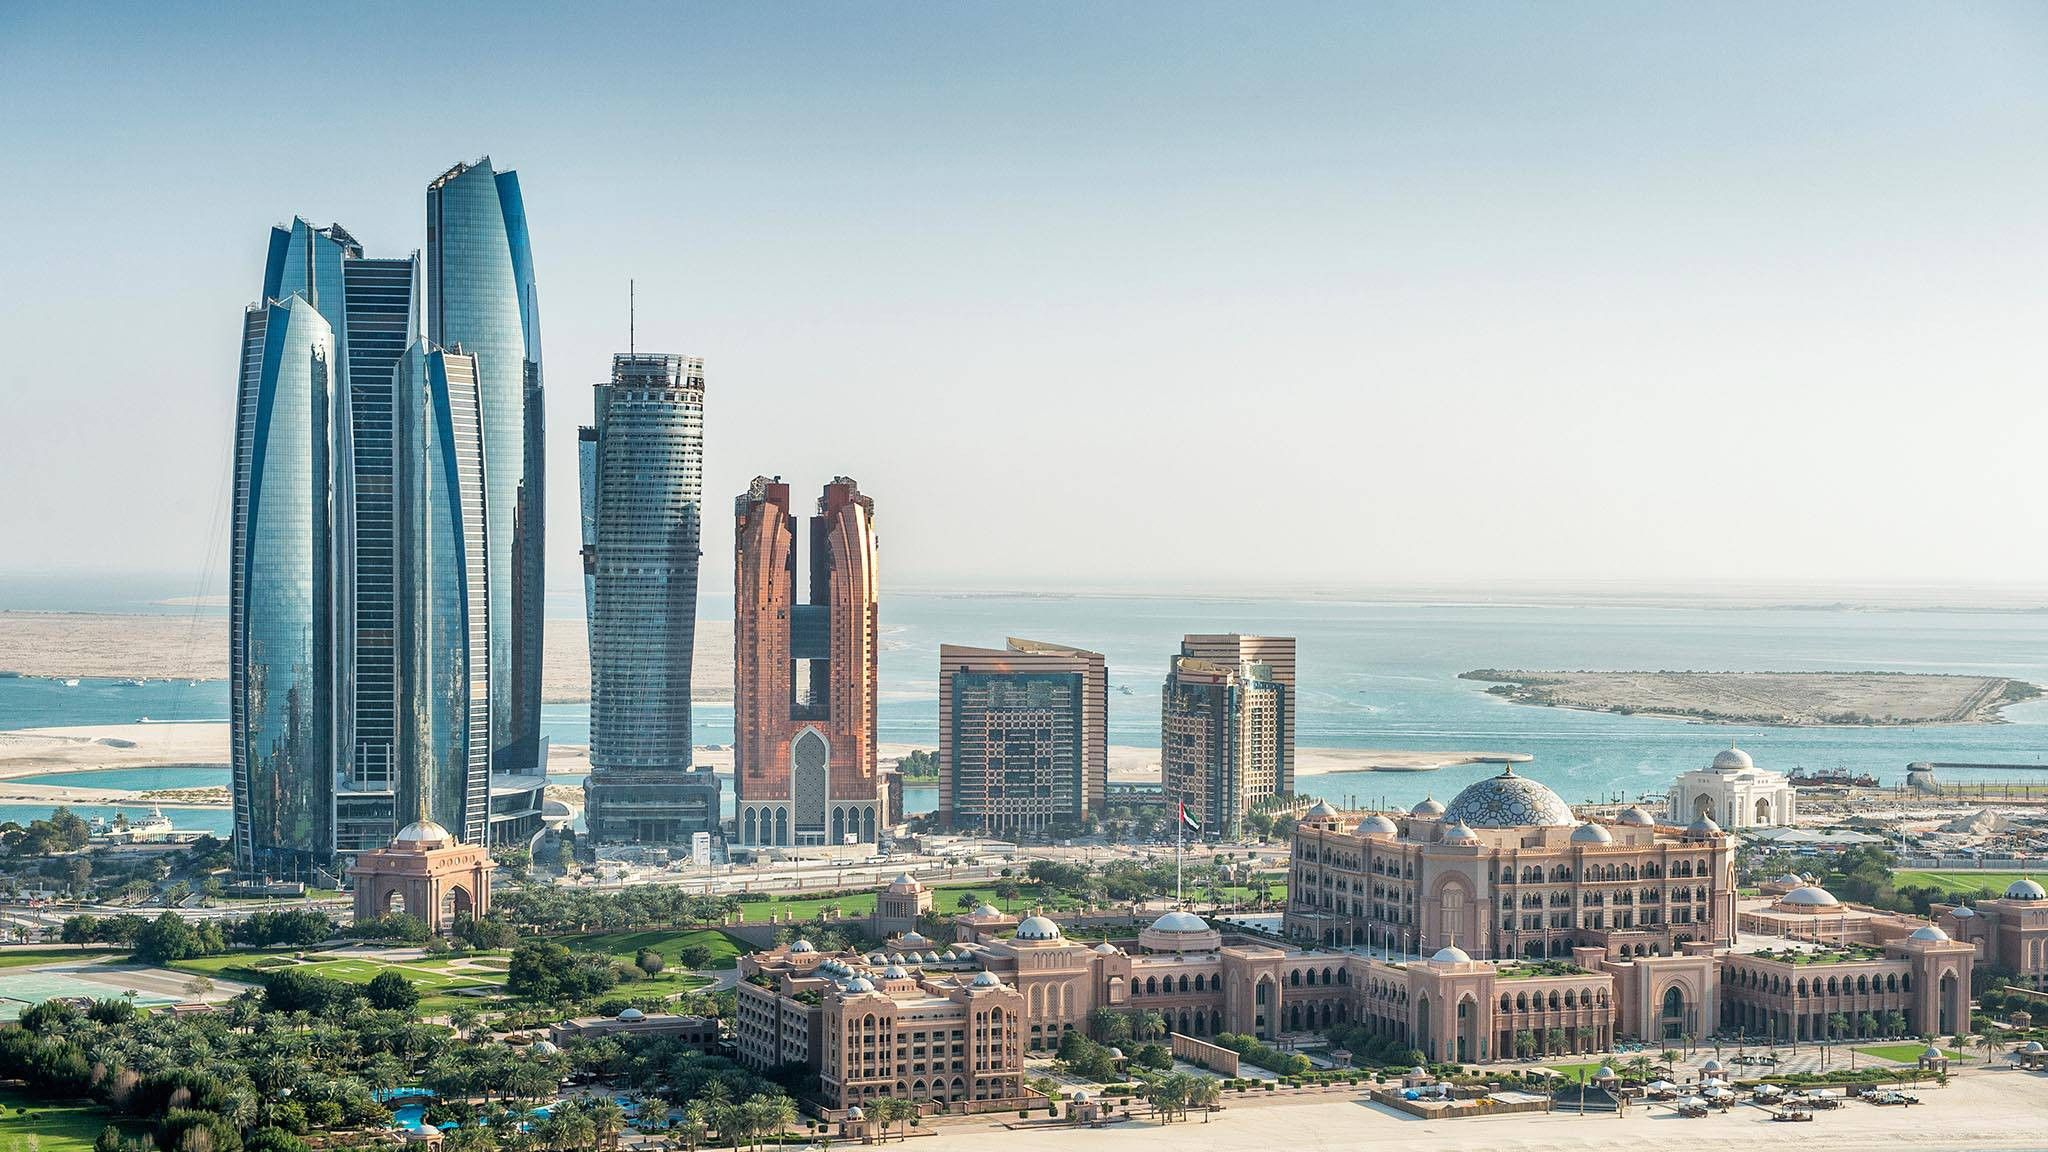 Abu Dhabi – The best place for business in Middle East